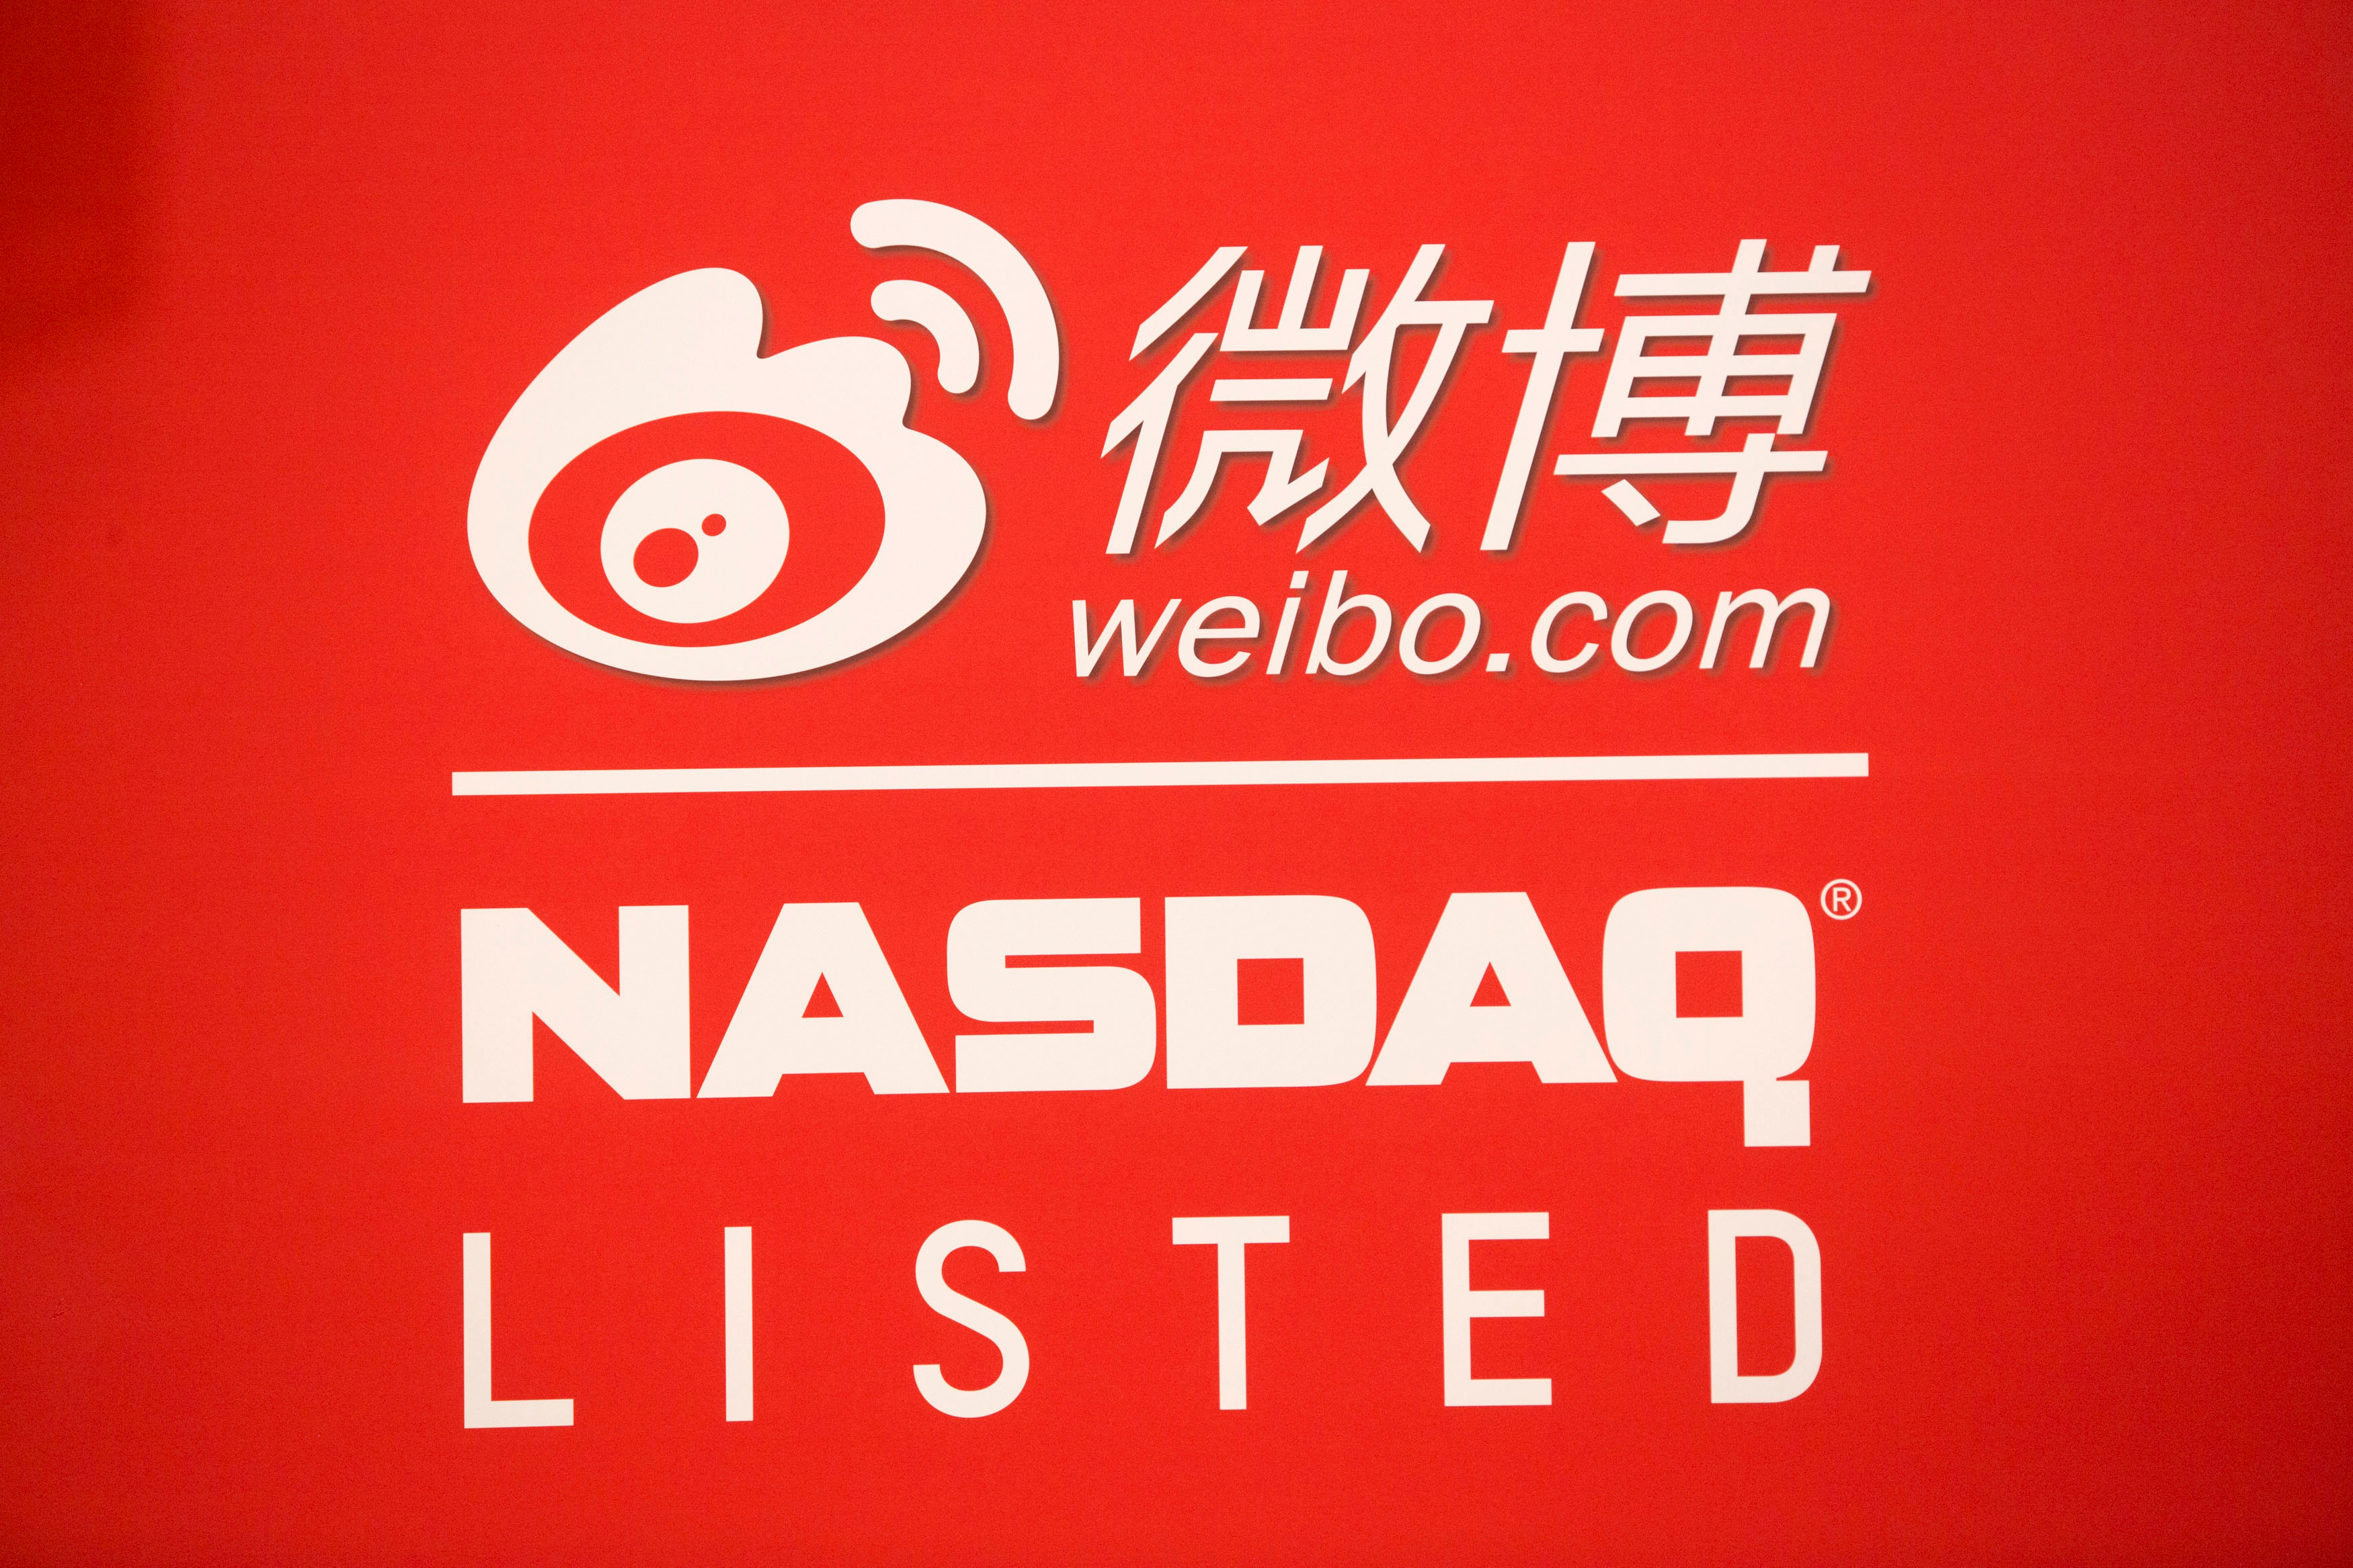 Signage for Weibo Corporation is seen at the NASDAQ MarketSite in Times Square on day one of its initial public offering (IPO) on The NASDAQ Stock Market in New York  April 17, 2014. REUTERS/Andrew Kelly/File Photo